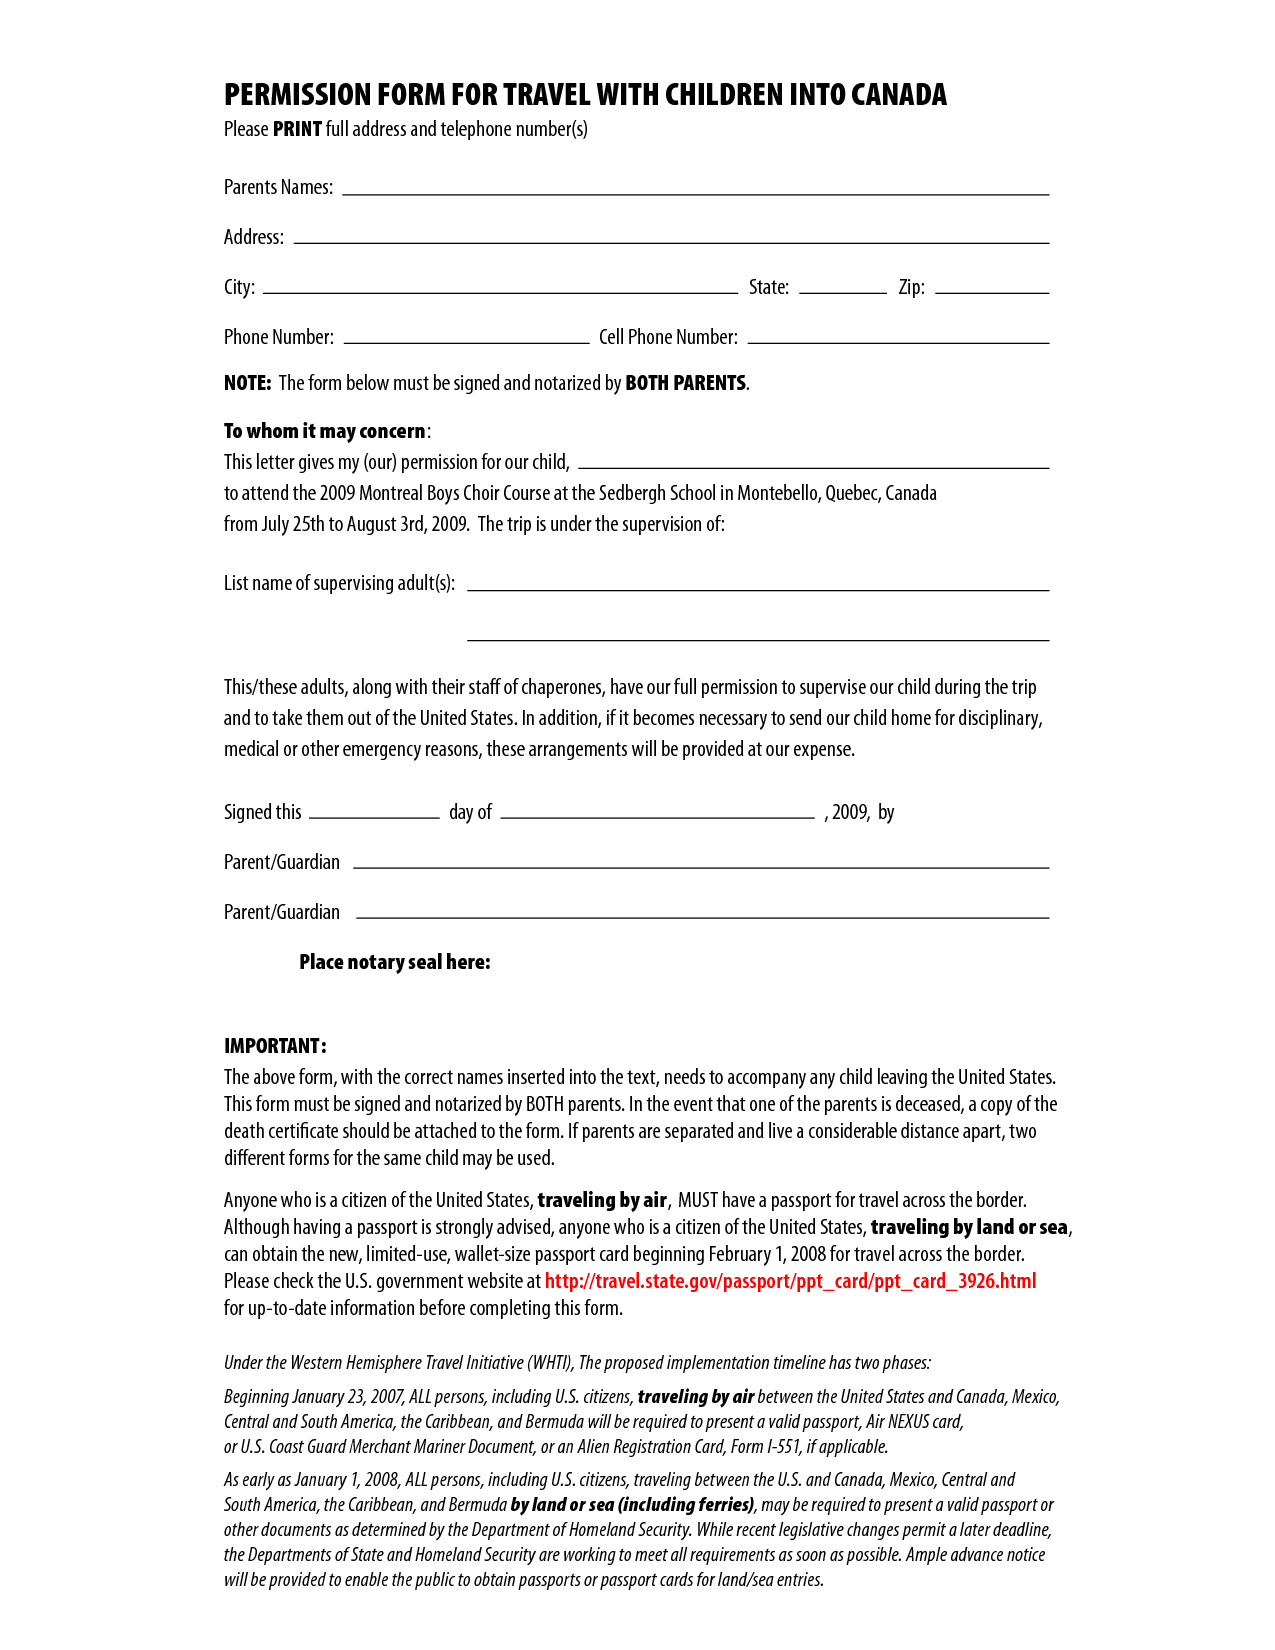 permission form for travel with children into canada by csgirla letter of permission to travel